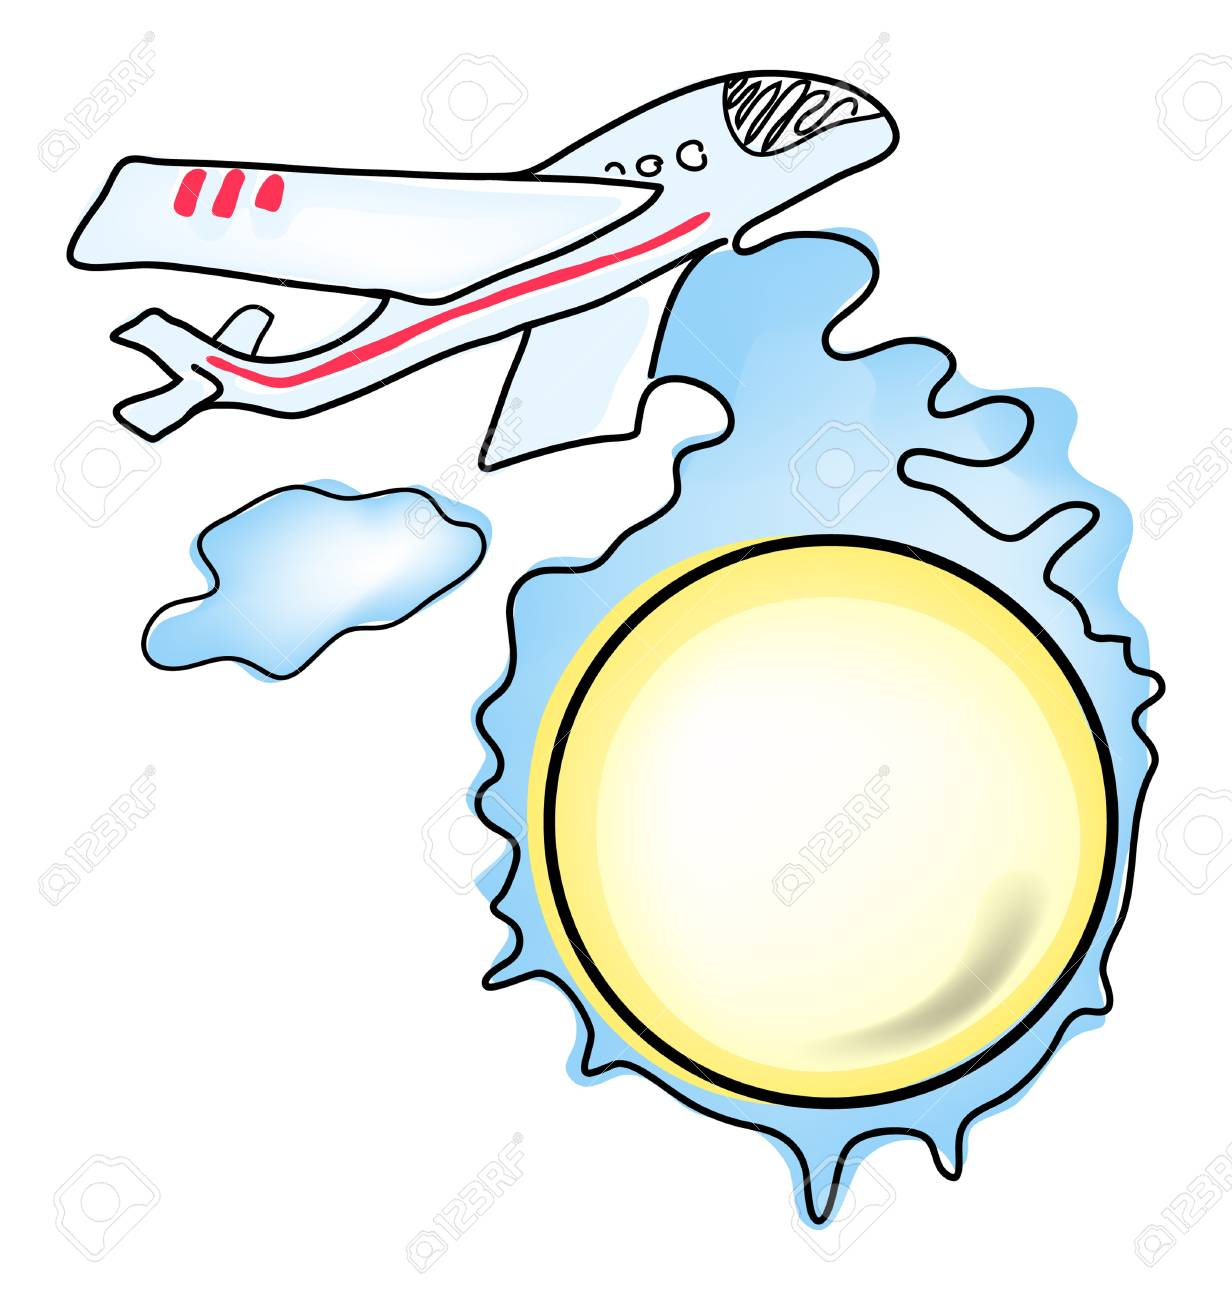 Vector illustration of modern airplane flying over earth Stock Vector - 9720640